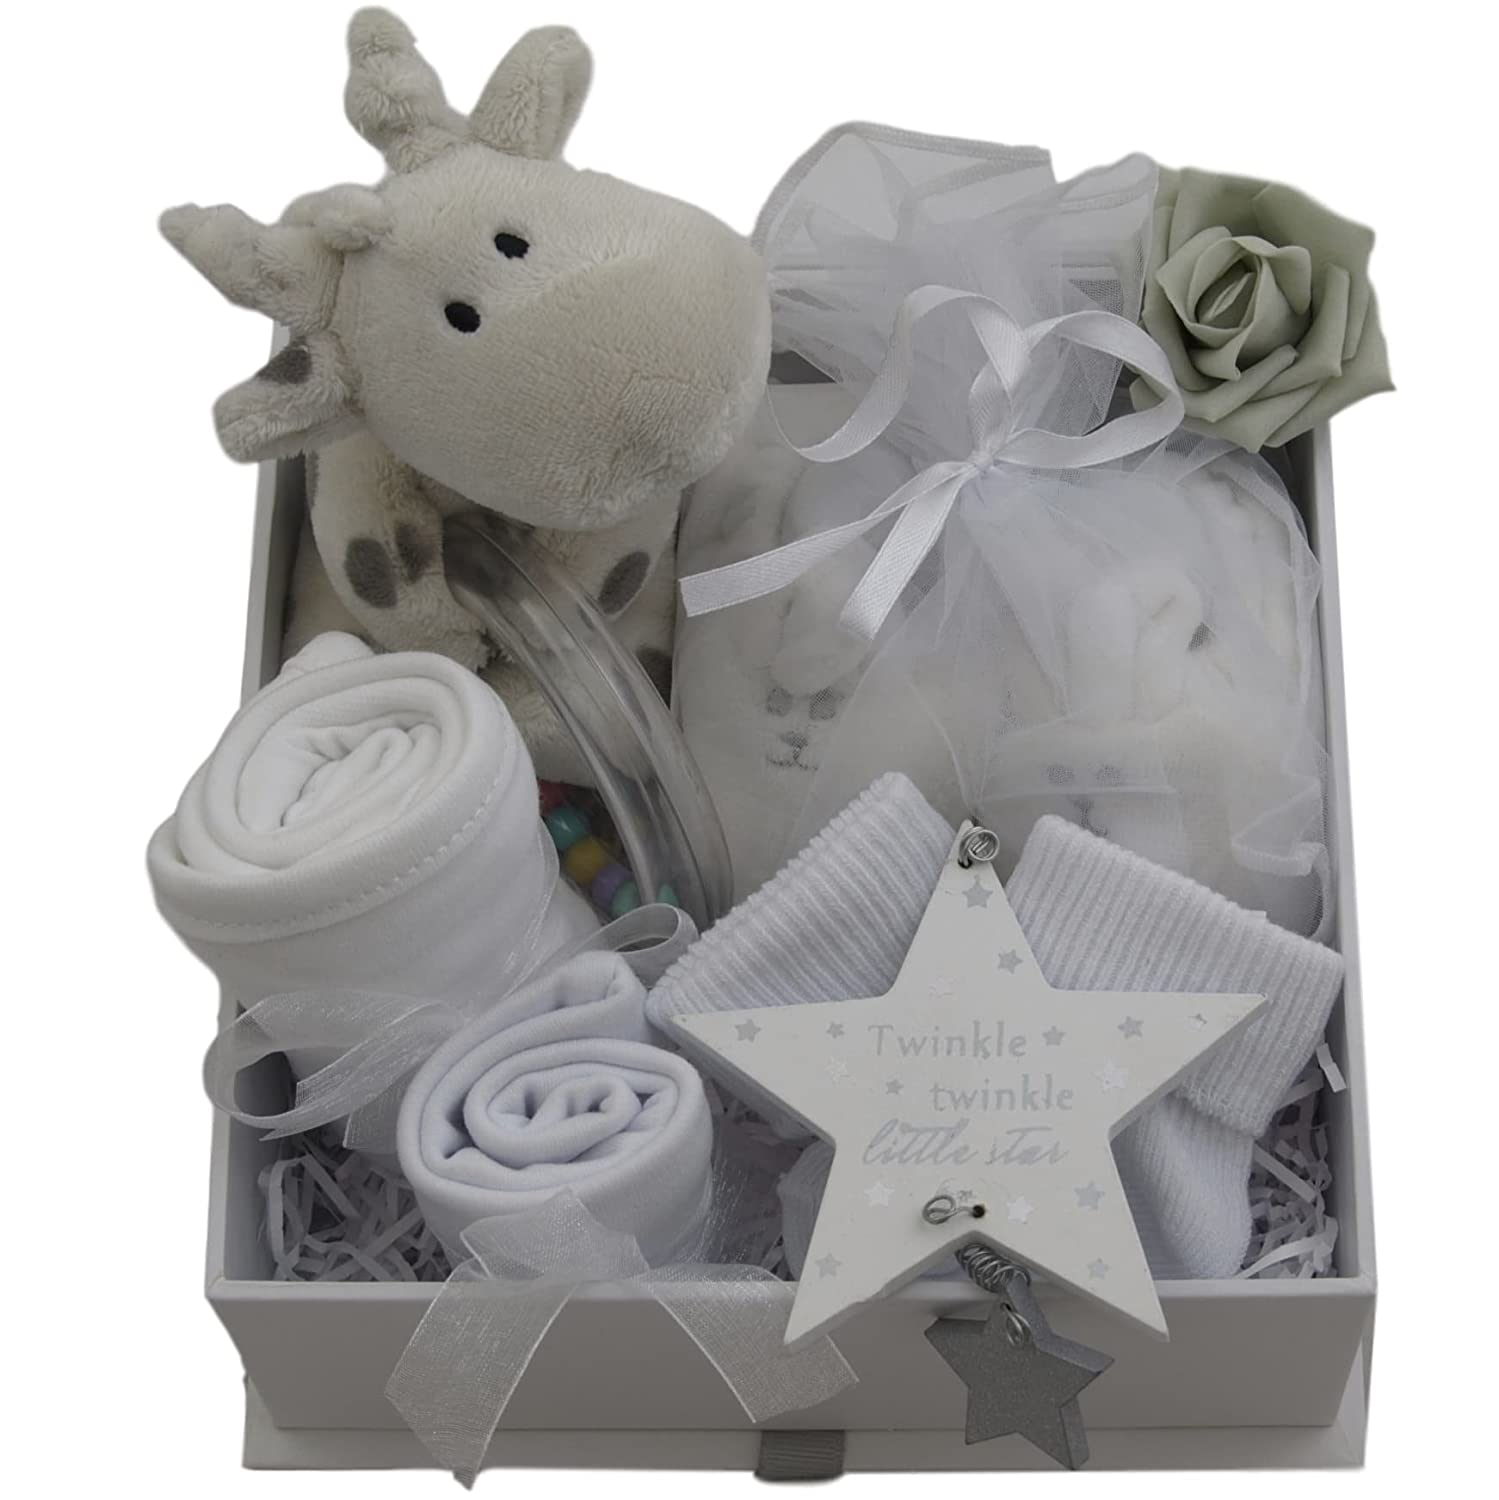 Baby Gift Basket Baby Gift Hamper Unisex Neutral Packed Twinkle Keepsake Box Baby Shower Gift New Baby Gift boy Girl Unique Baby Gift Baskets